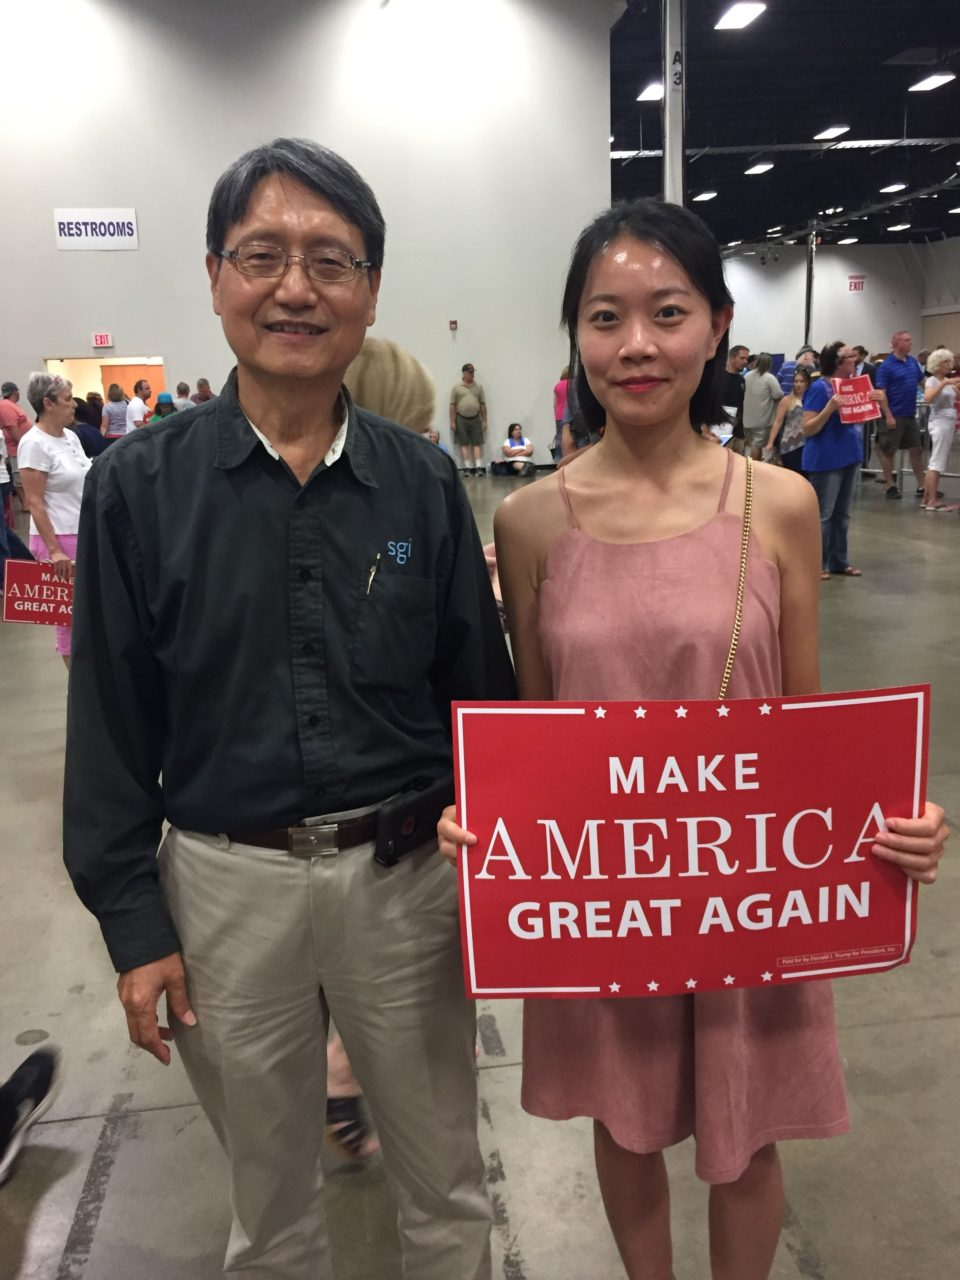 Man and his daughter at rally